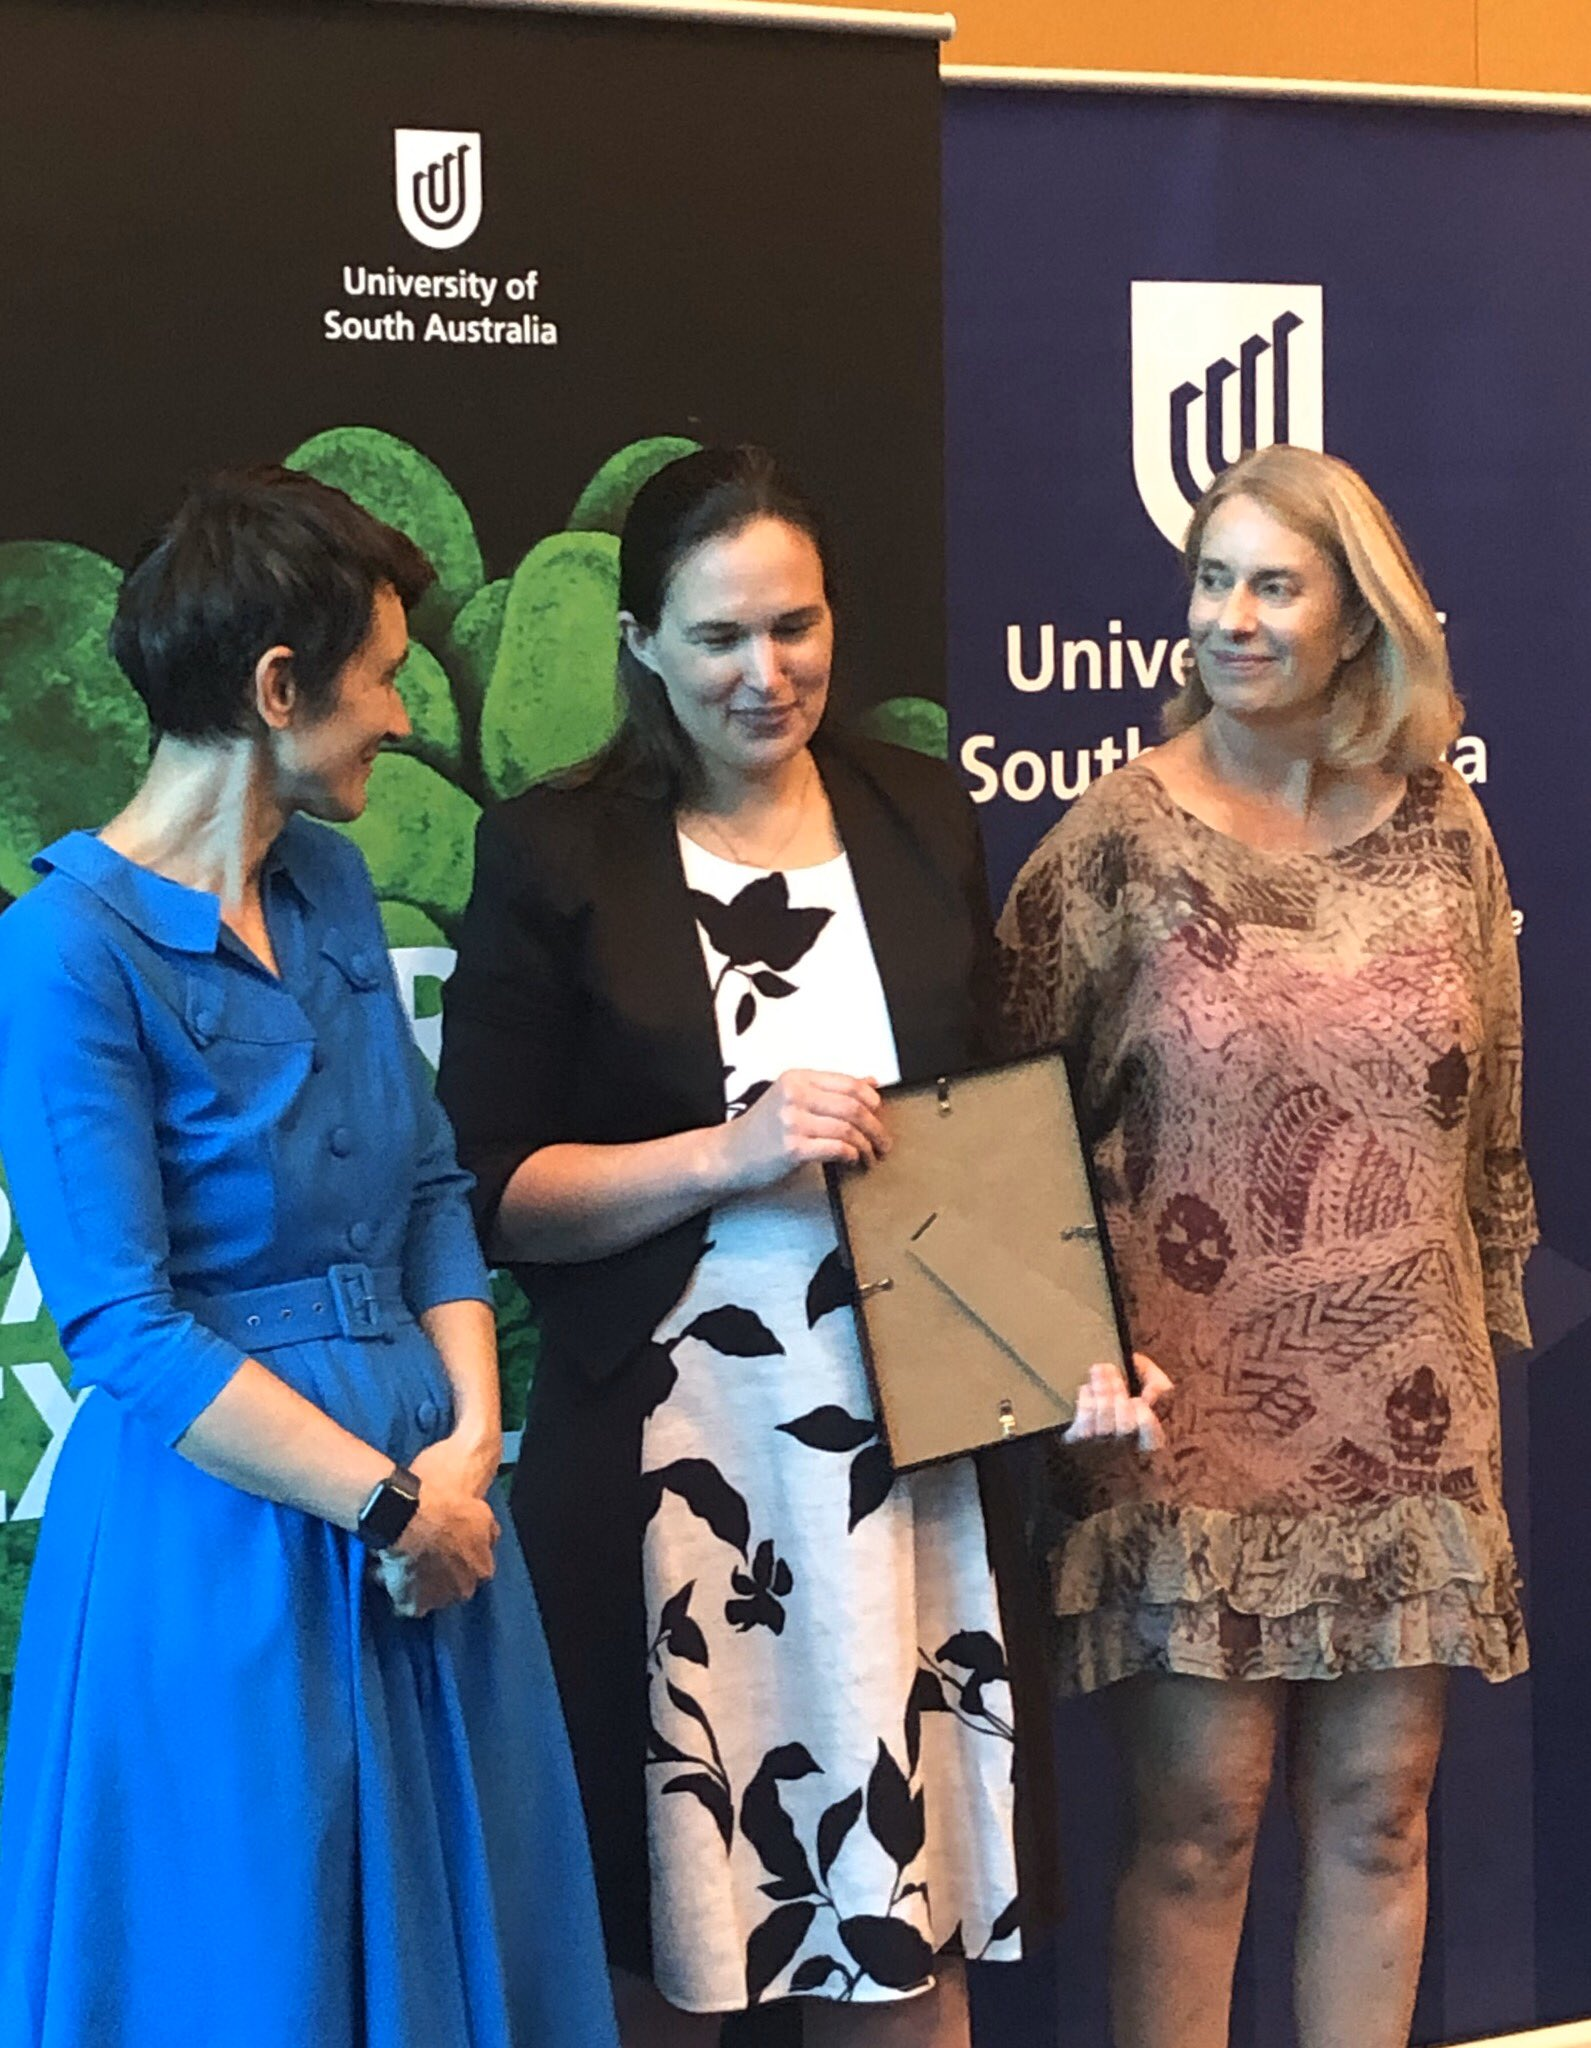 Unisa Resi On Twitter Congratulations To Dr Mel Baak On Being Presented The 2019 Universitysa Eass Early Career Researcher Award Resi Unisaresearch Https T Co Inlpd6vexv